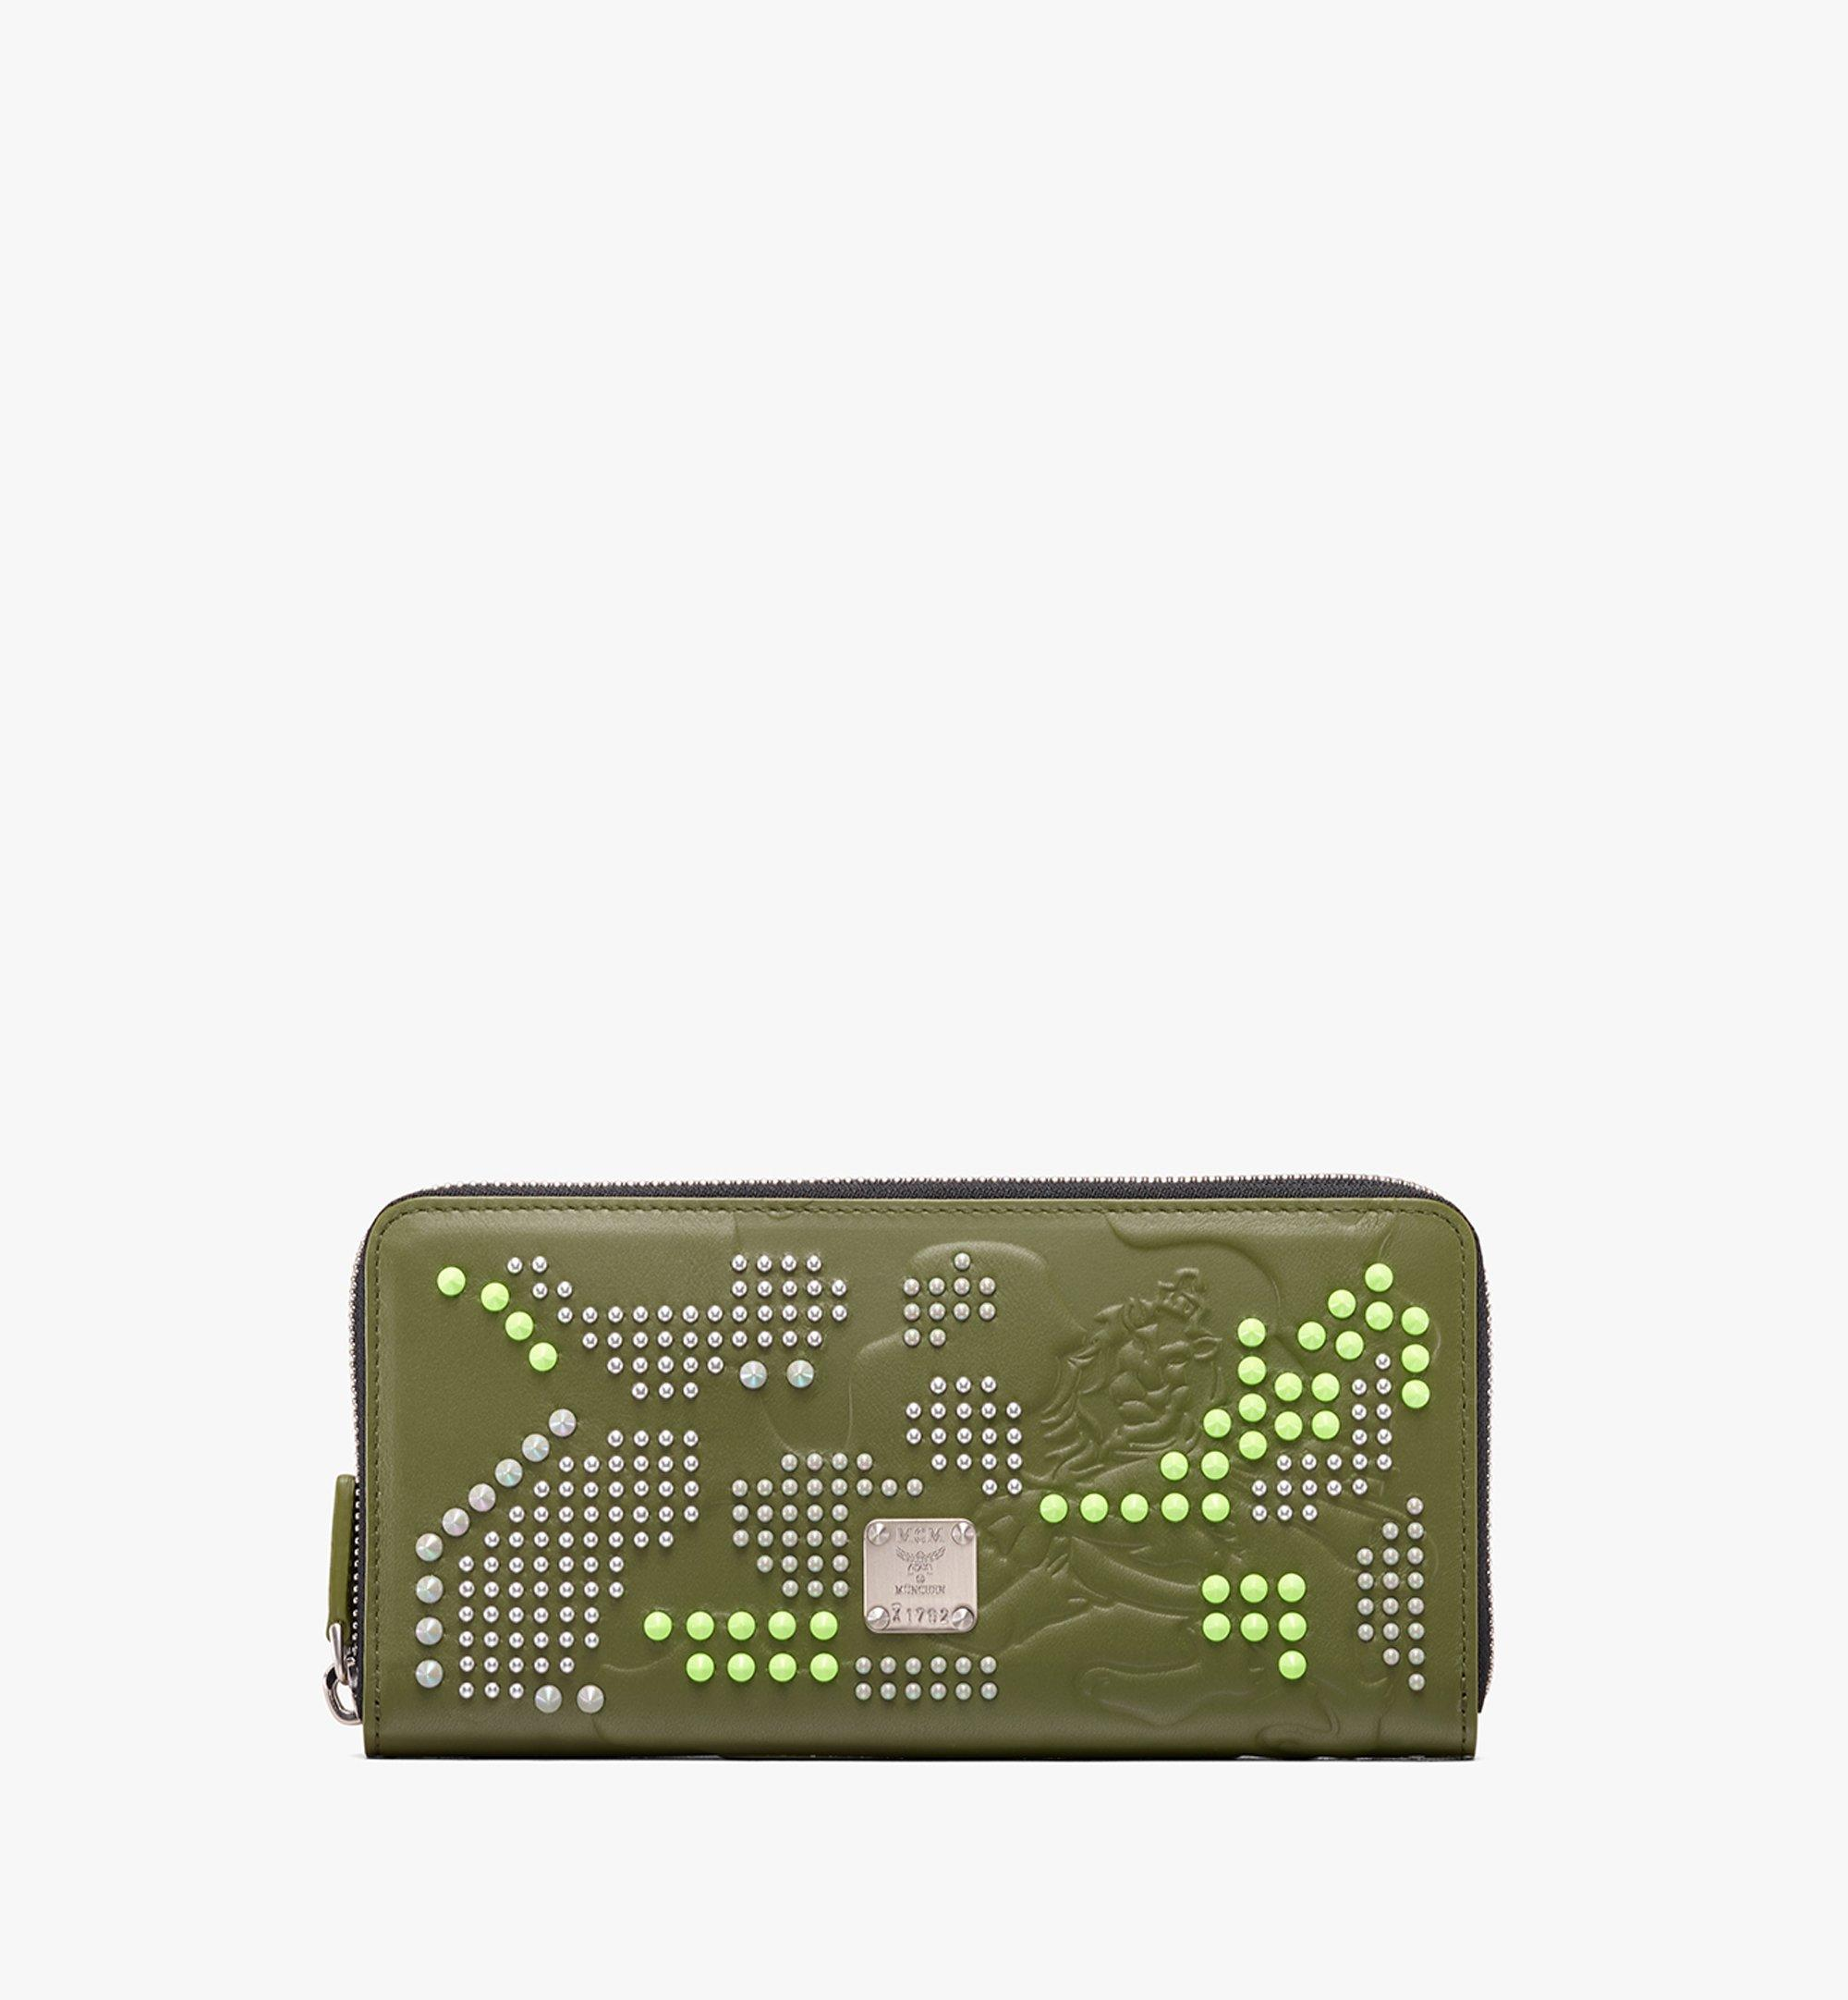 MCM Zip Wallet in Studded Lion Camo Green MXL9ACM02G8001 Alternate View 1